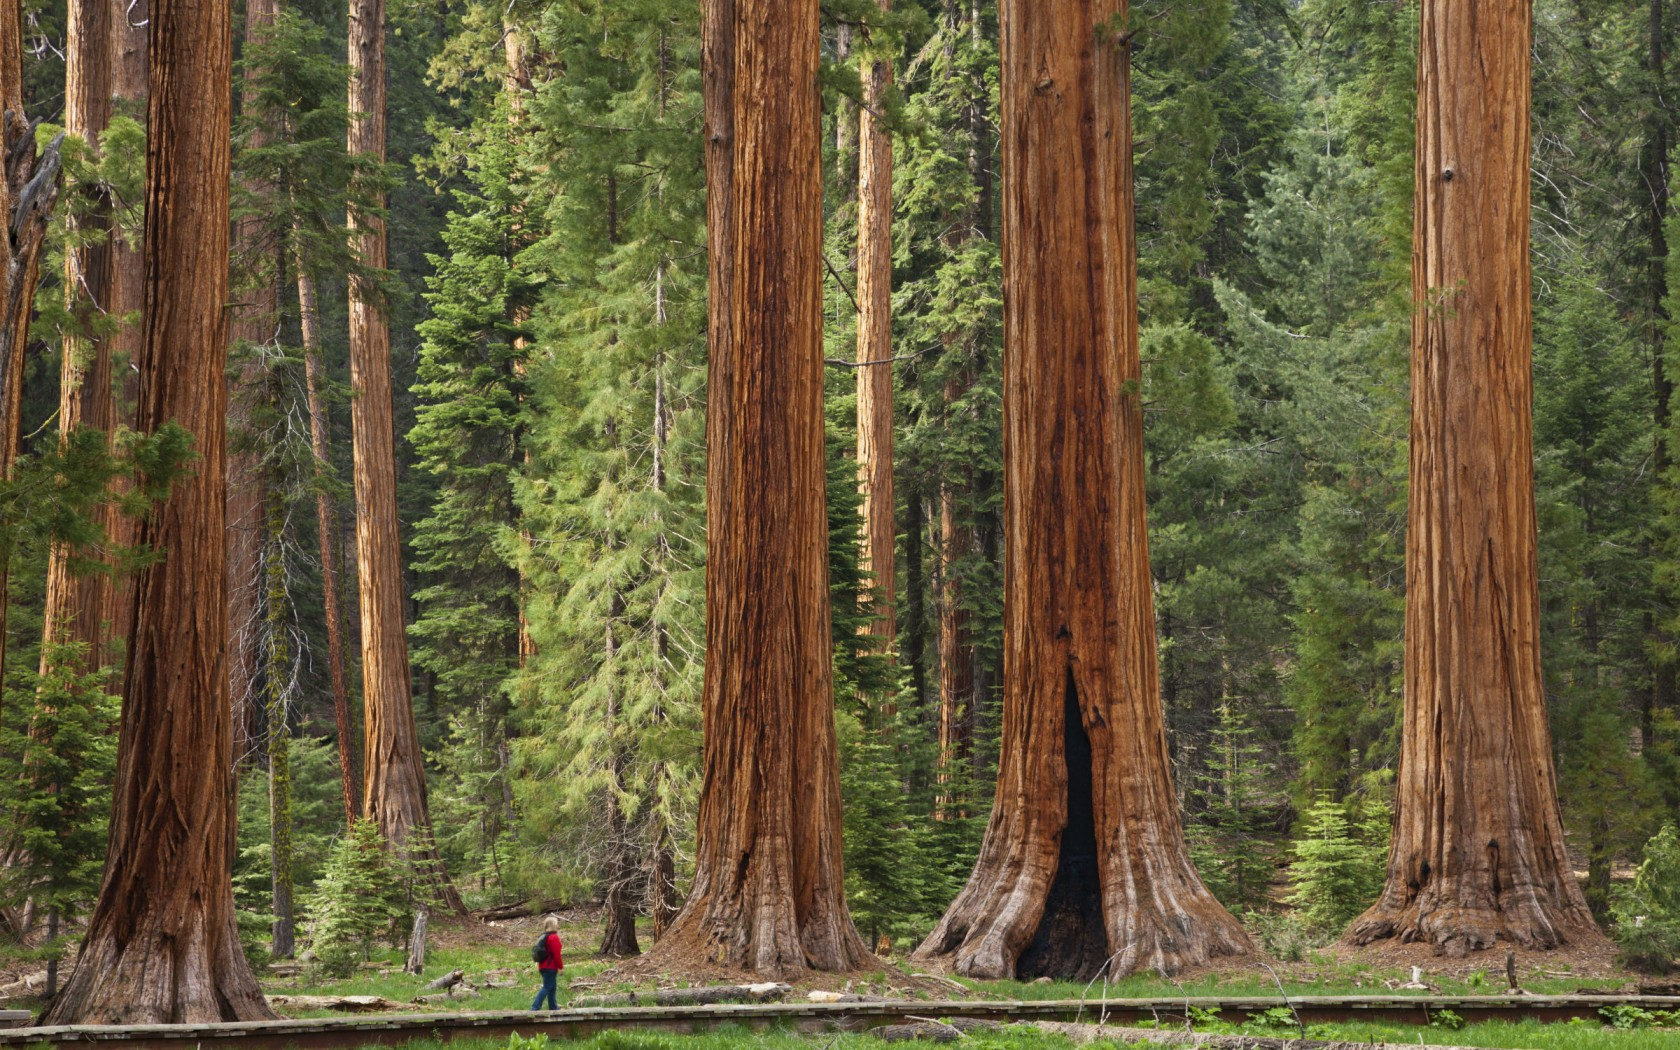 https://i1.wp.com/www.cel-mai.ro/imagini/sequoia-m/giant-sequoia.jpg